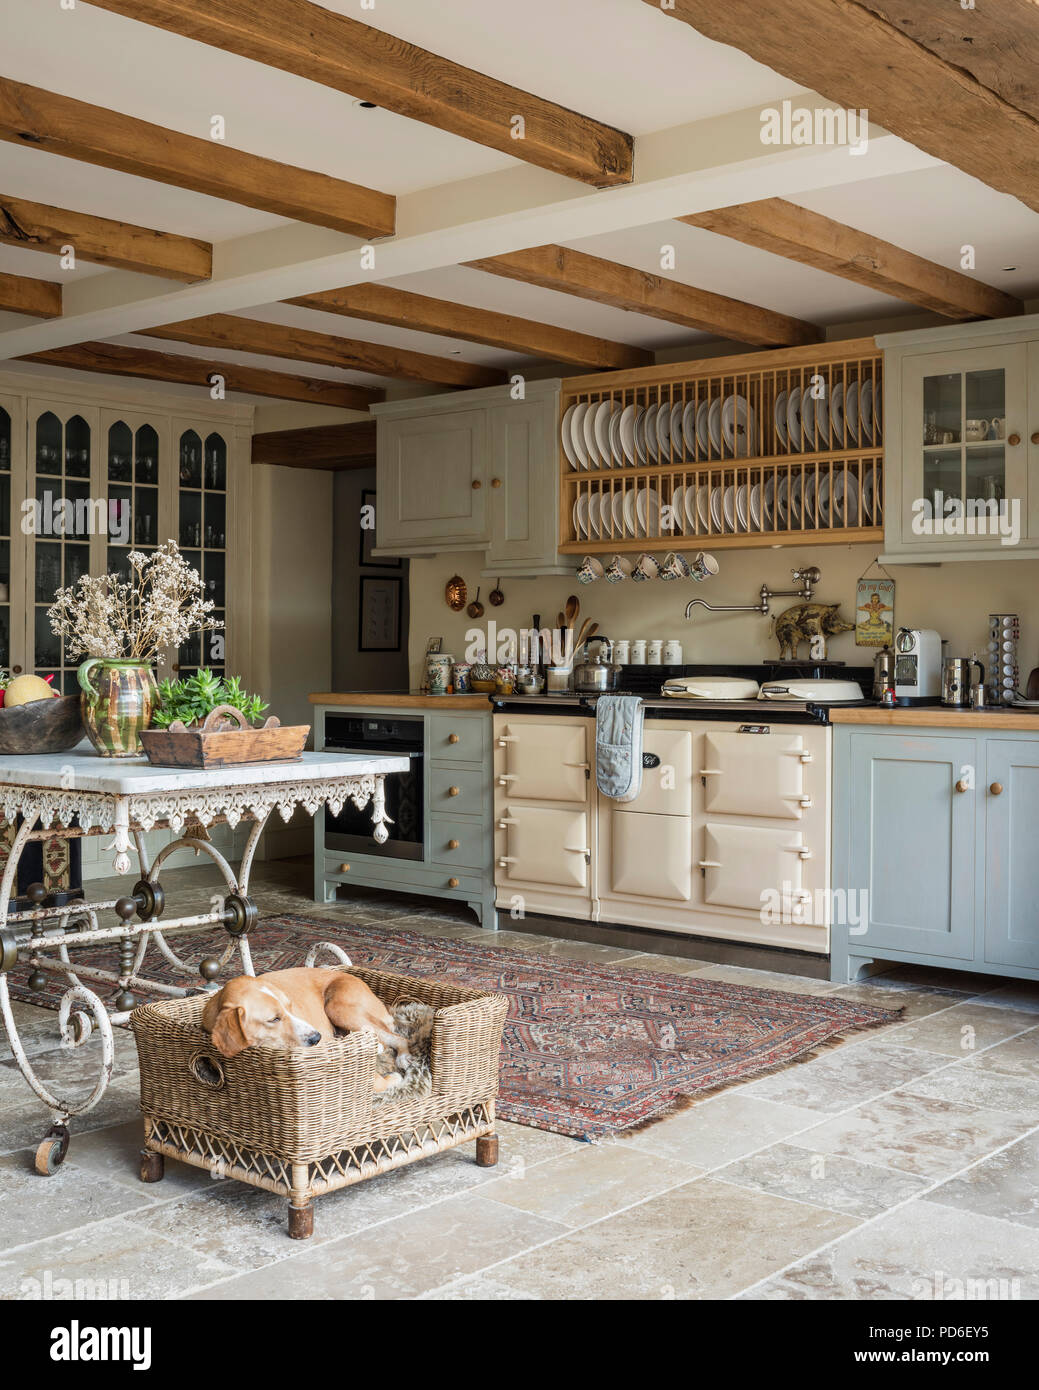 https www alamy com light blue fitted farmhouse kitchen with plate rack and sleeping dog in basket image214658393 html